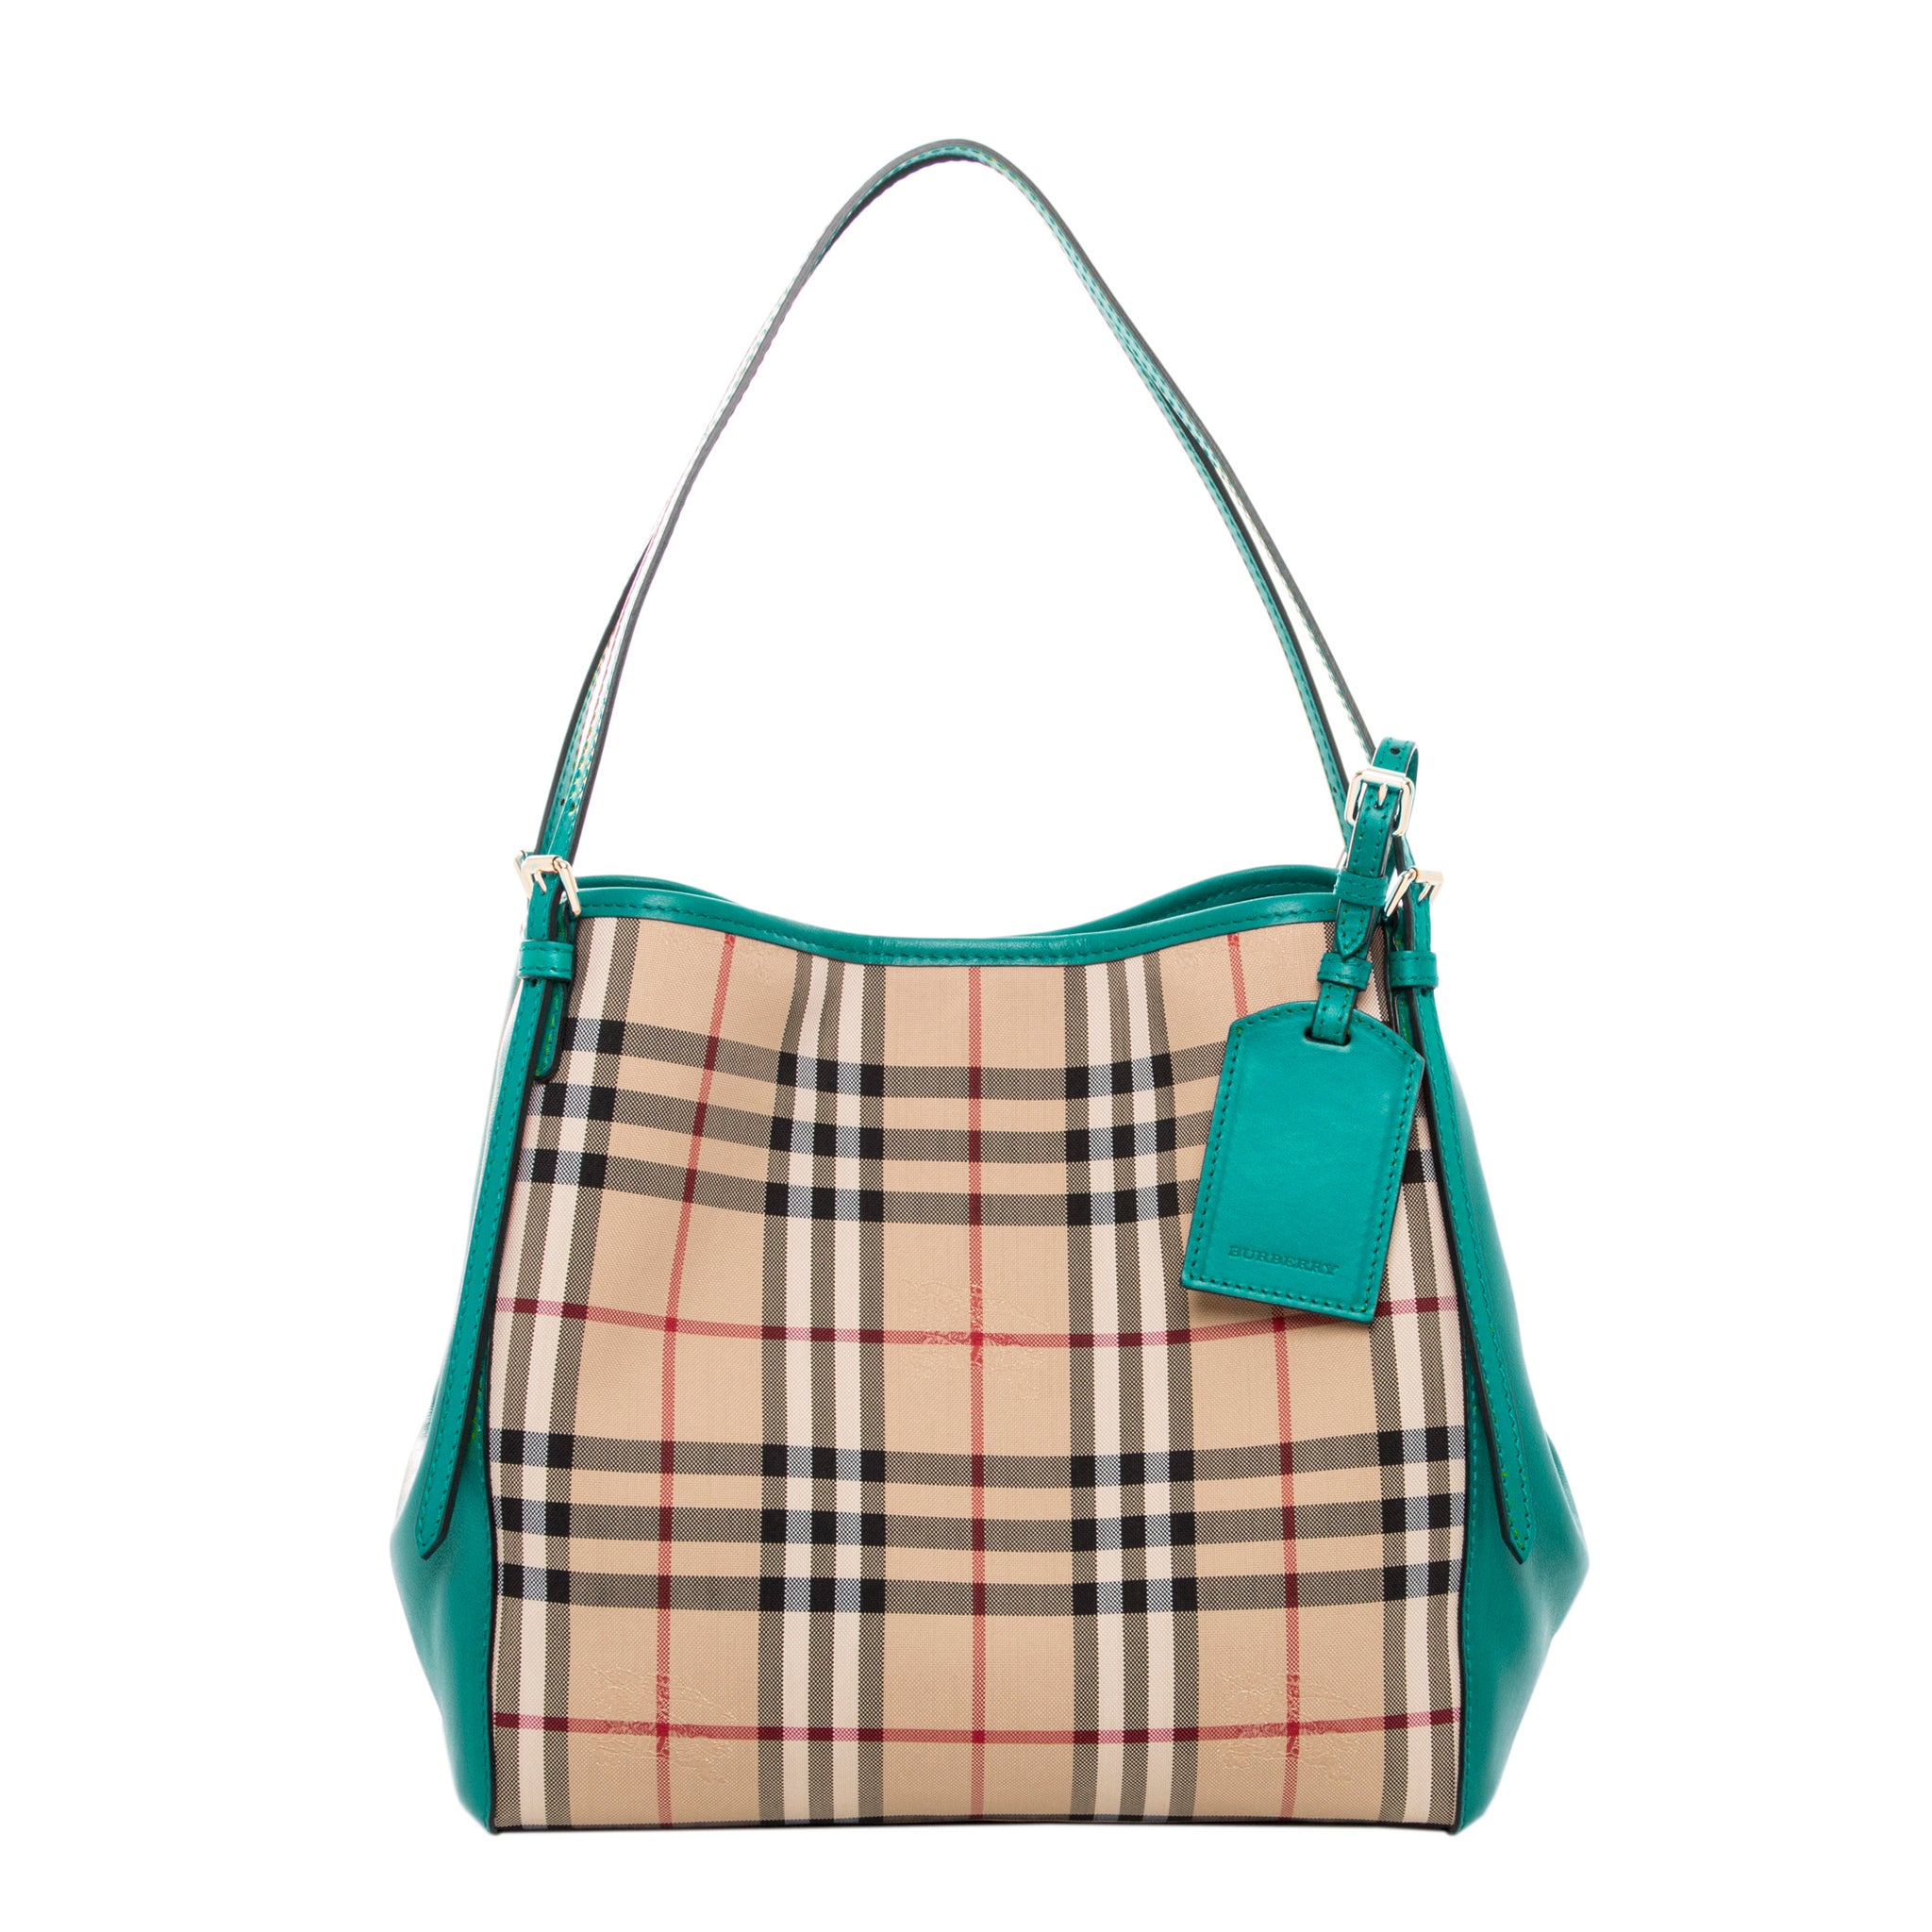 450f88329c37 Shop Burberry Small Canter Horseferry Check Leather Handbag - Free Shipping  Today - Overstock.com - 10395685